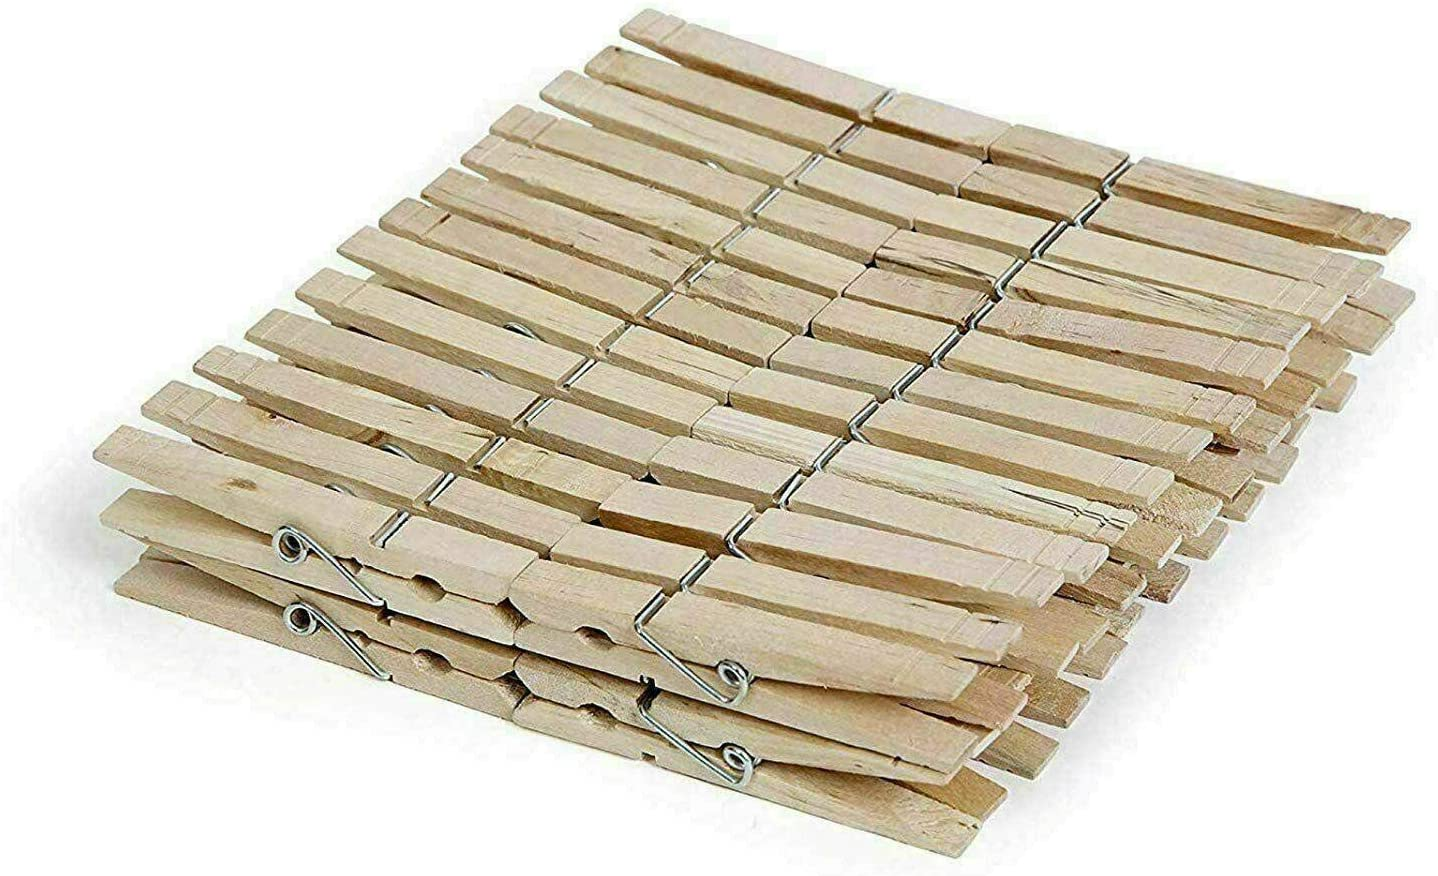 50 Pcs Direct store Wooden Clothespins Wood Regular Size Clothes Challenge the lowest price of Japan Pins Laundry